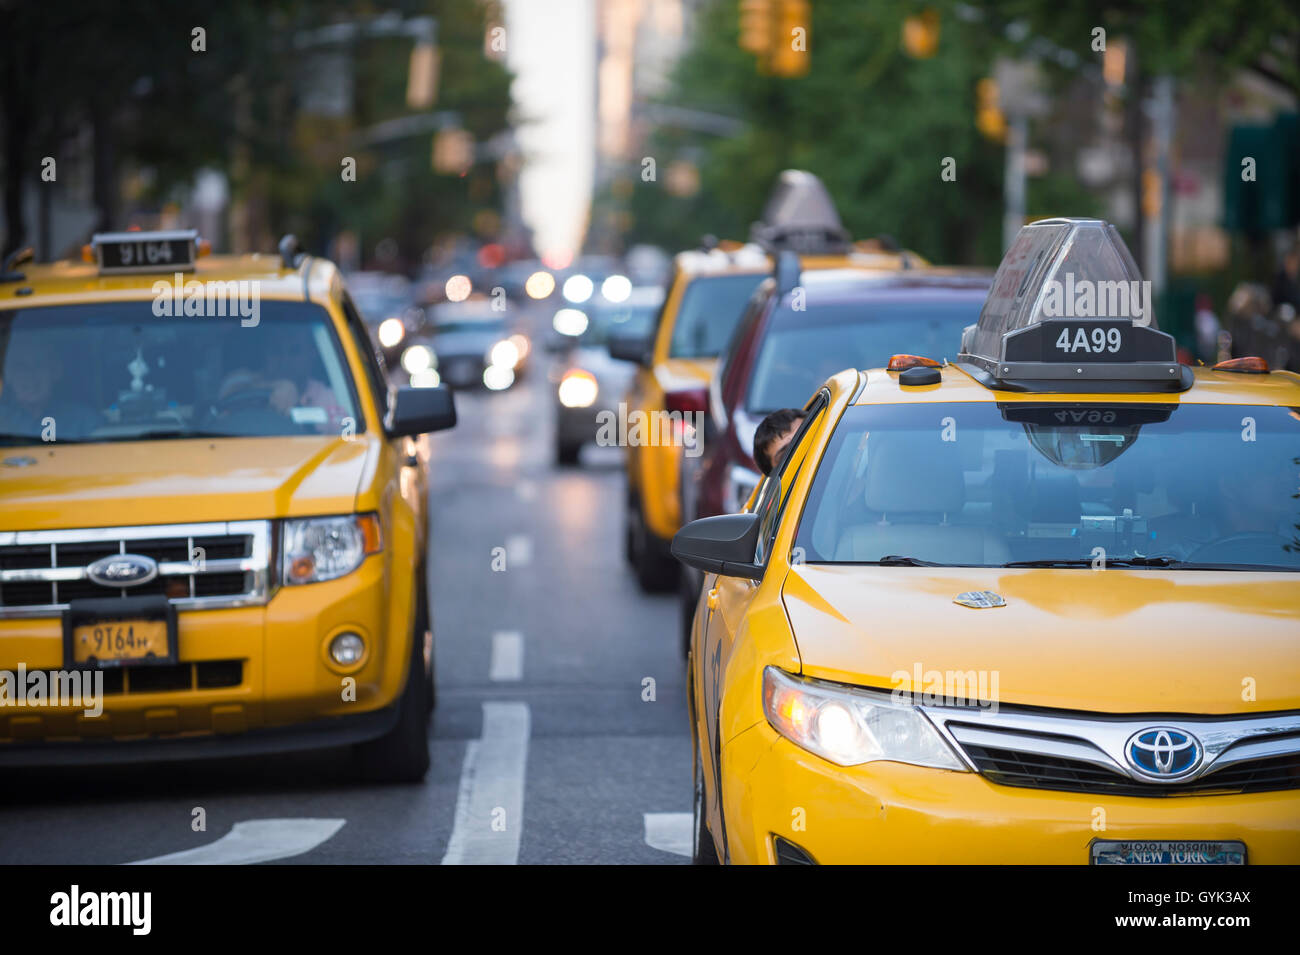 NEW YORK CITY - SEPTEMBER 4, 2016: Yellow taxis head downtown on a typical late afternoon scene on lower Fifth Avenue. Stock Photo